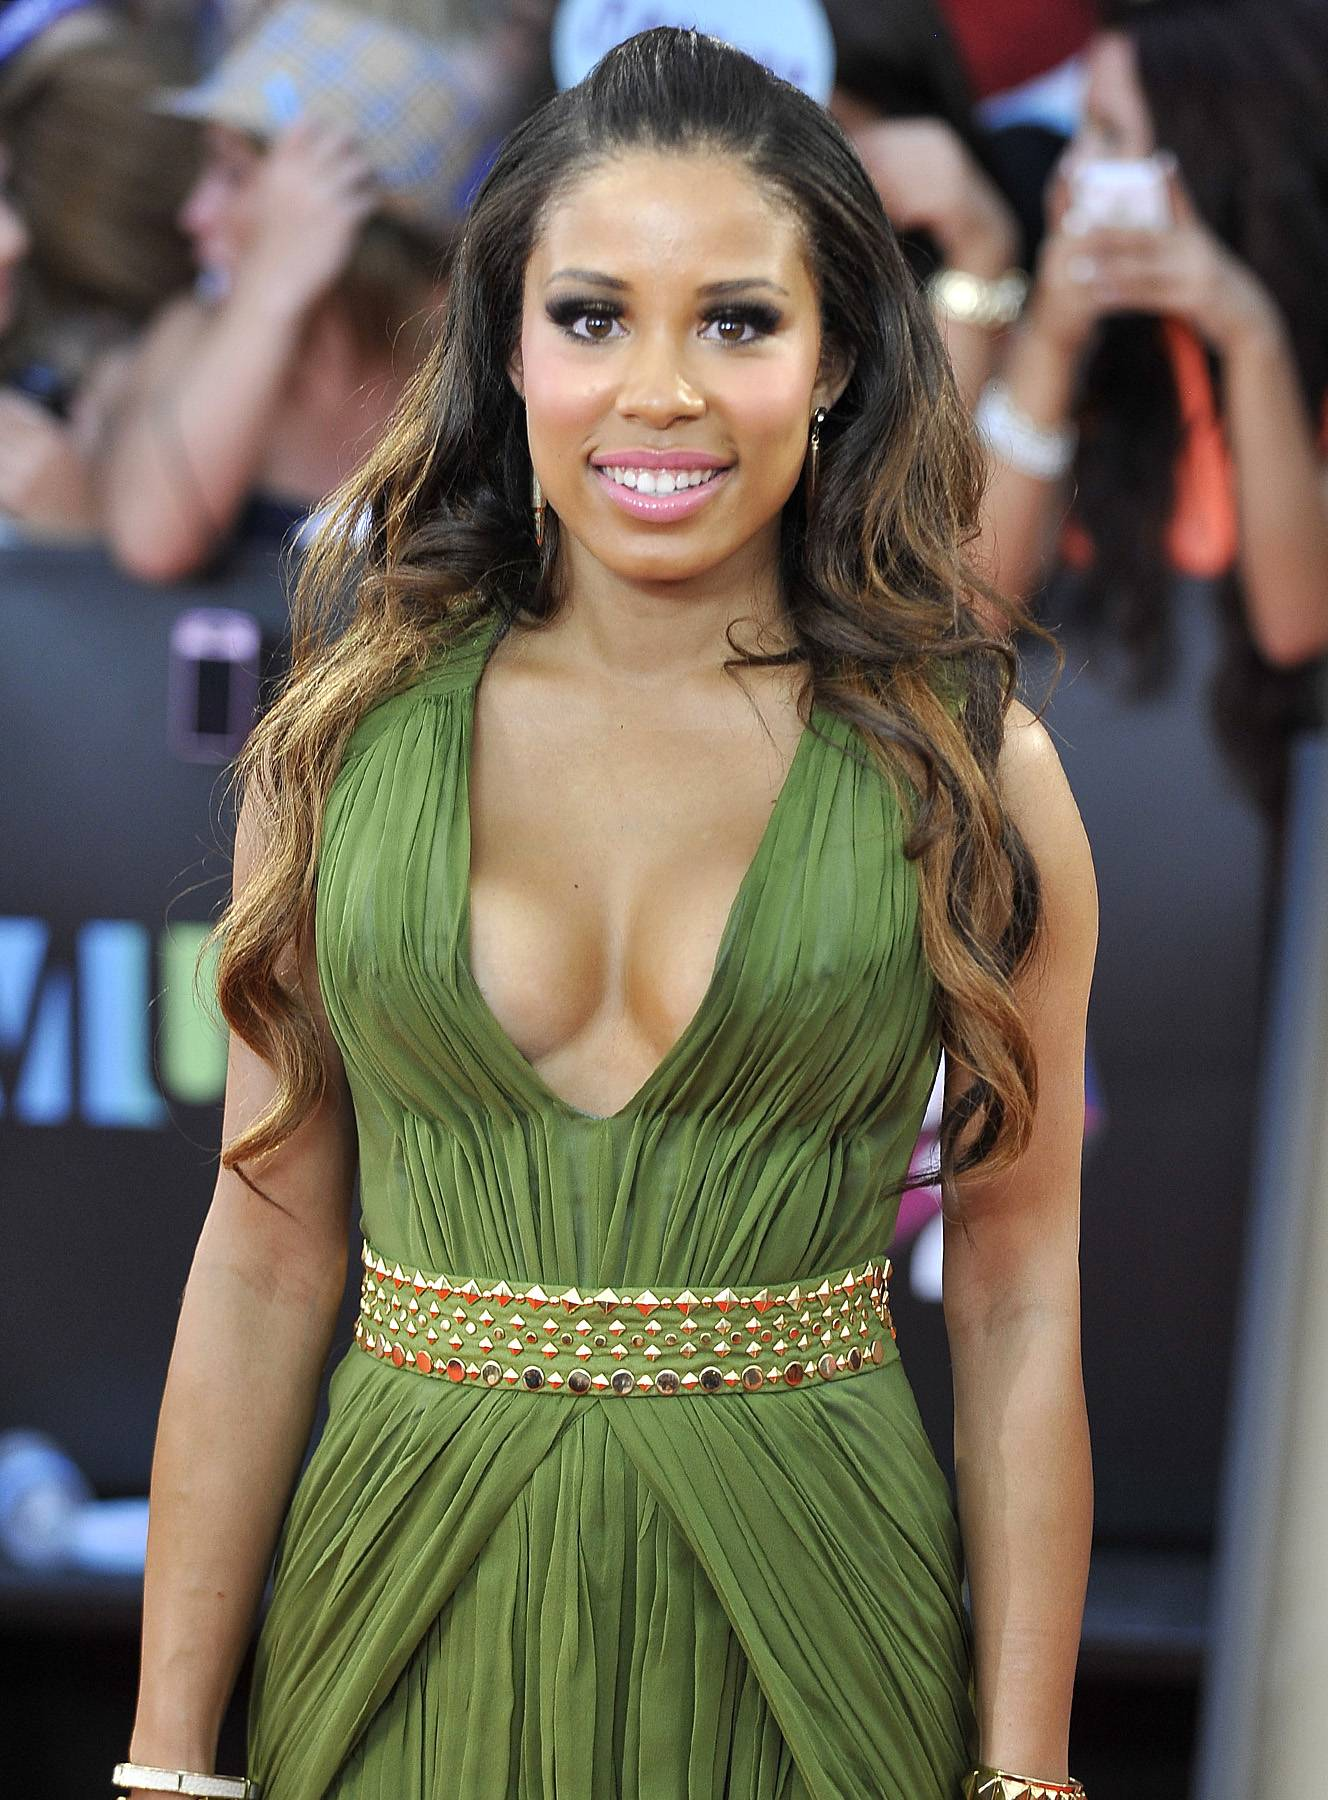 Diverse - Just in case you're wondering, Keshia Chante is multi-racial. Her mother is Portuguese and Puerto Rican and her father is Trinidadian.  (Photo: Jag Gundu/Getty Images)